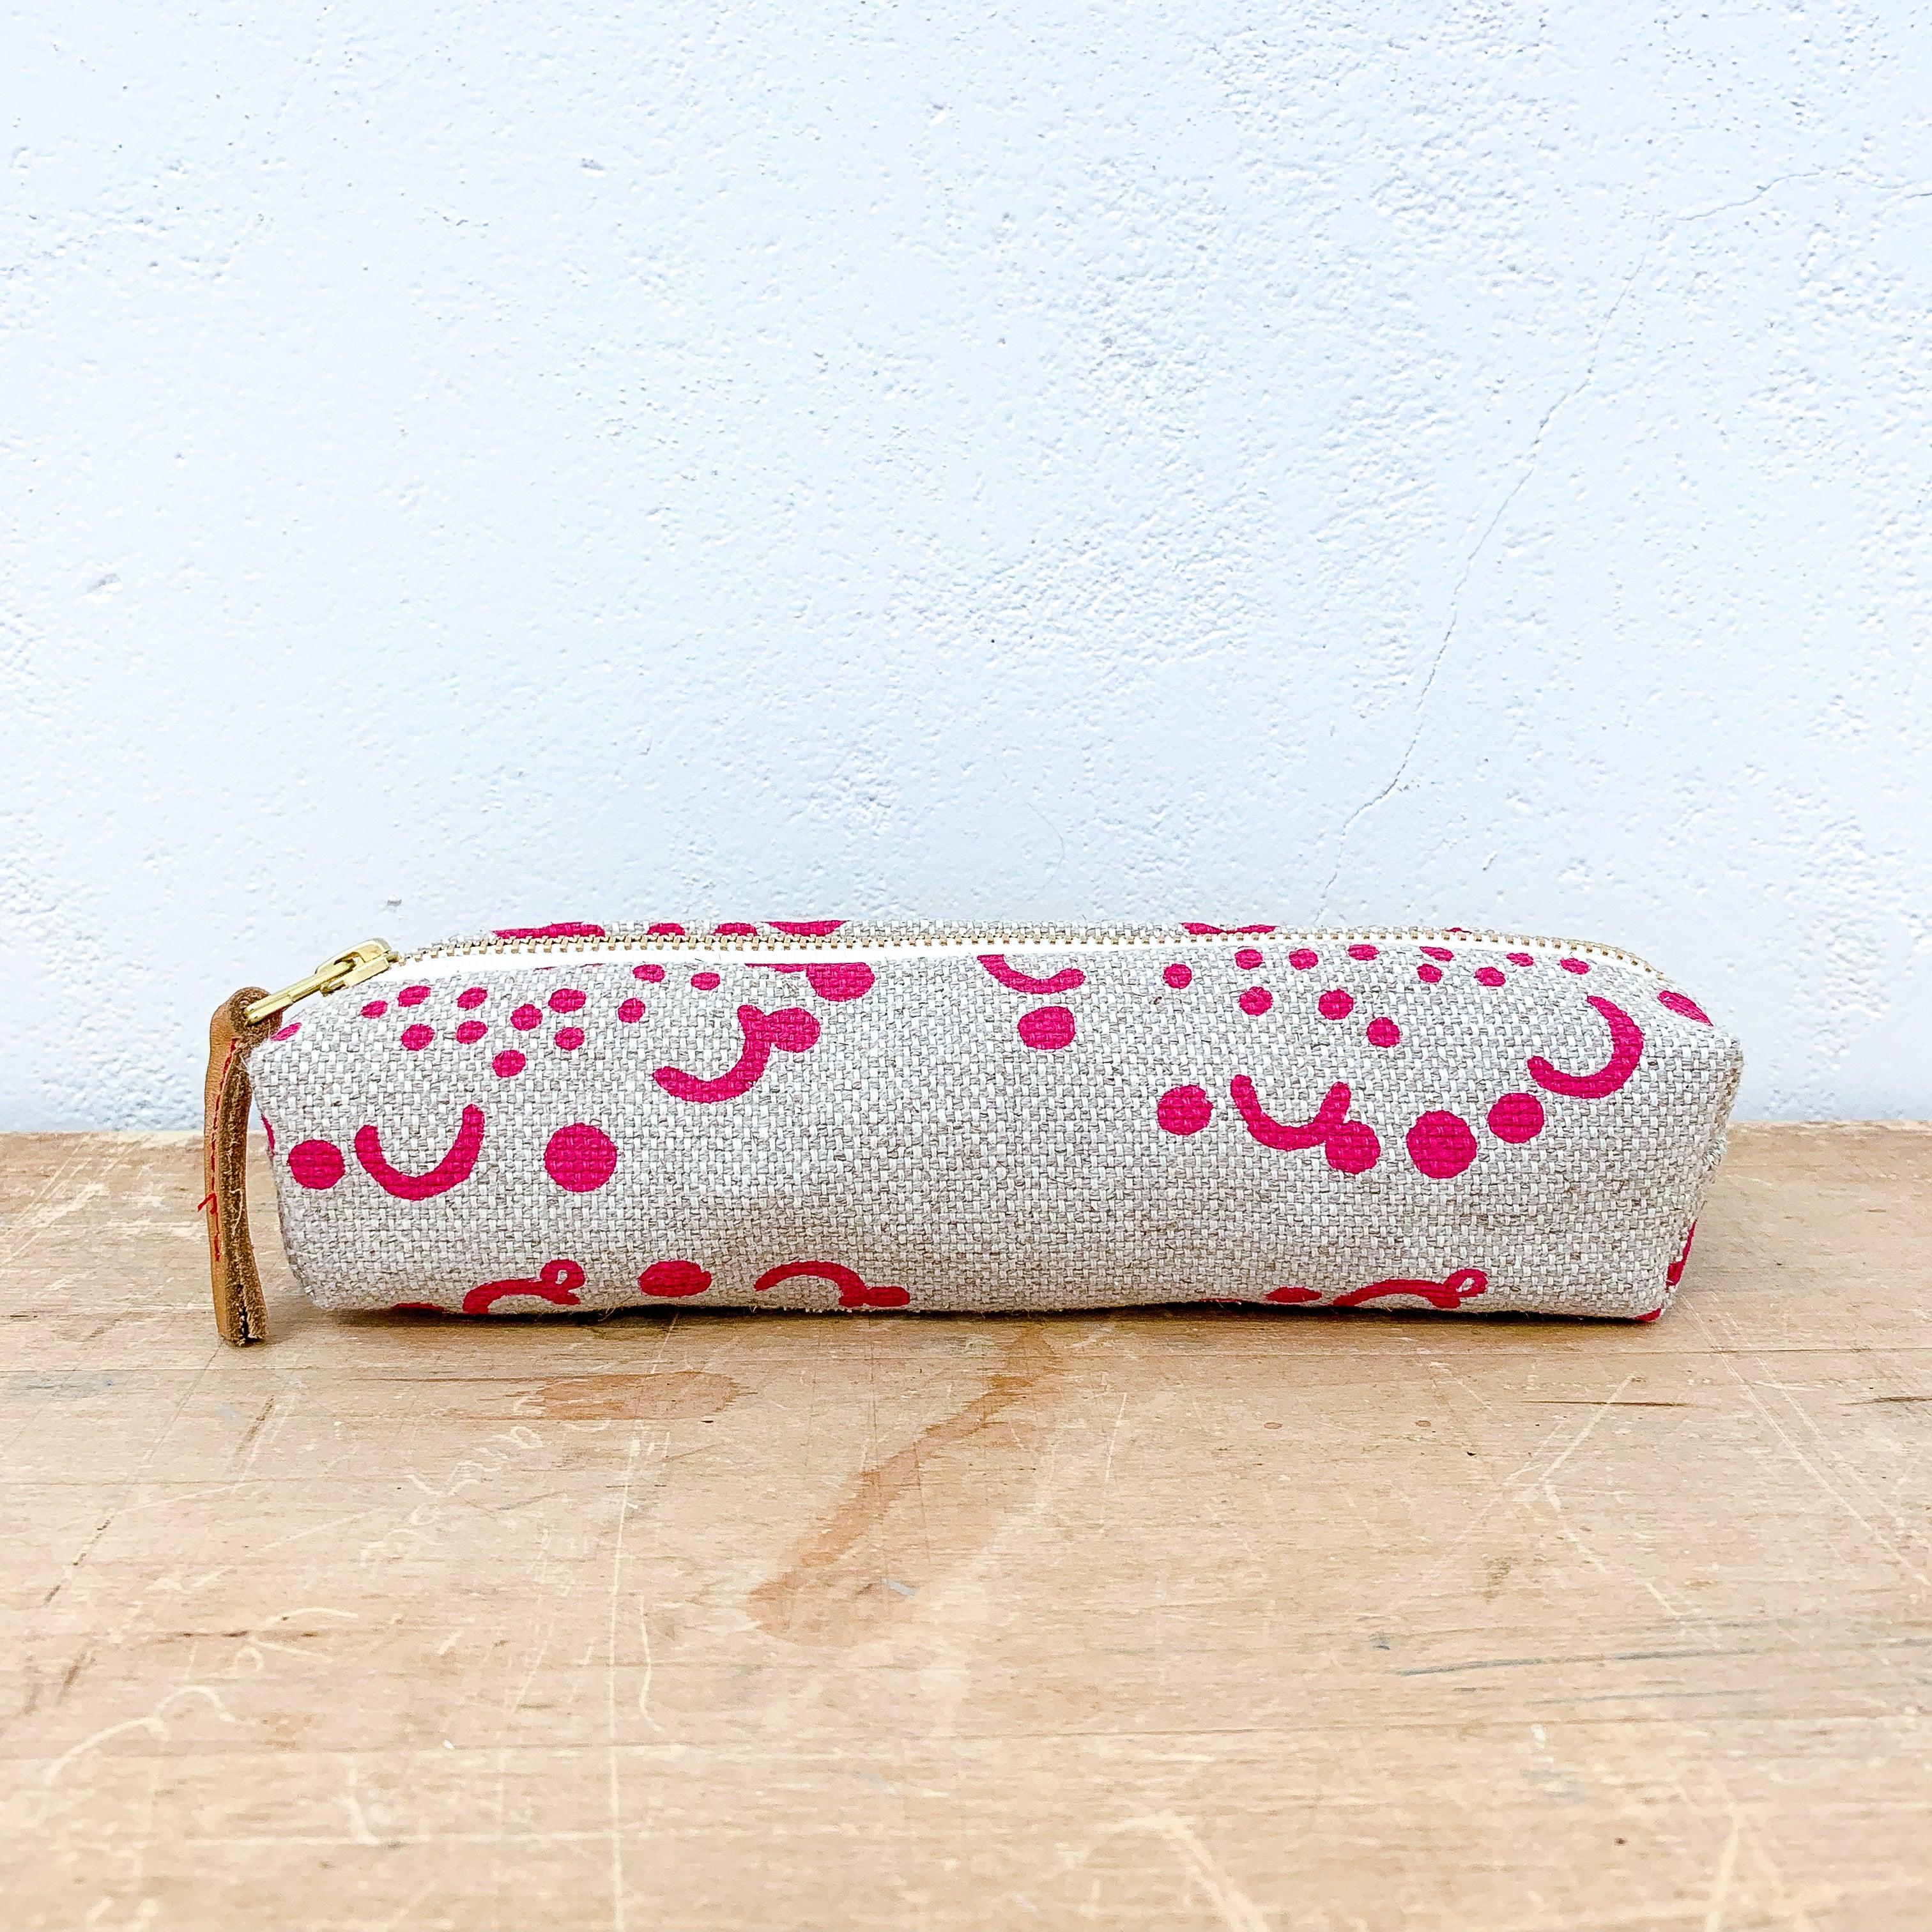 BERRY DANDELION OATMEAL LINEN ROUND PENCIL ZIPPER BAG